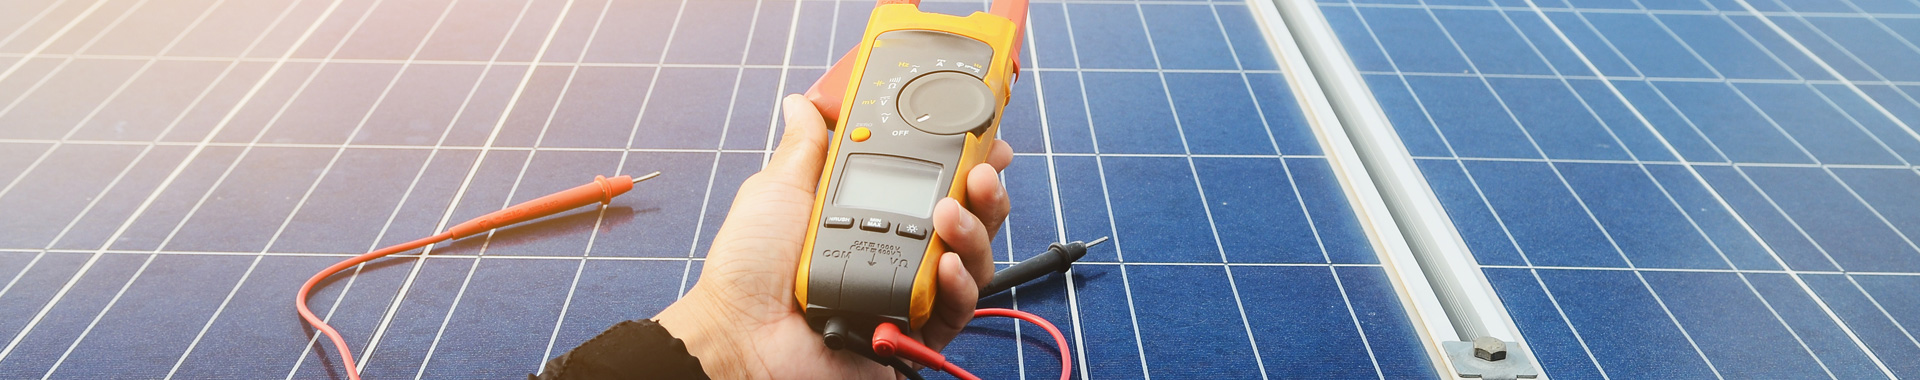 Measuring performance of solar panels